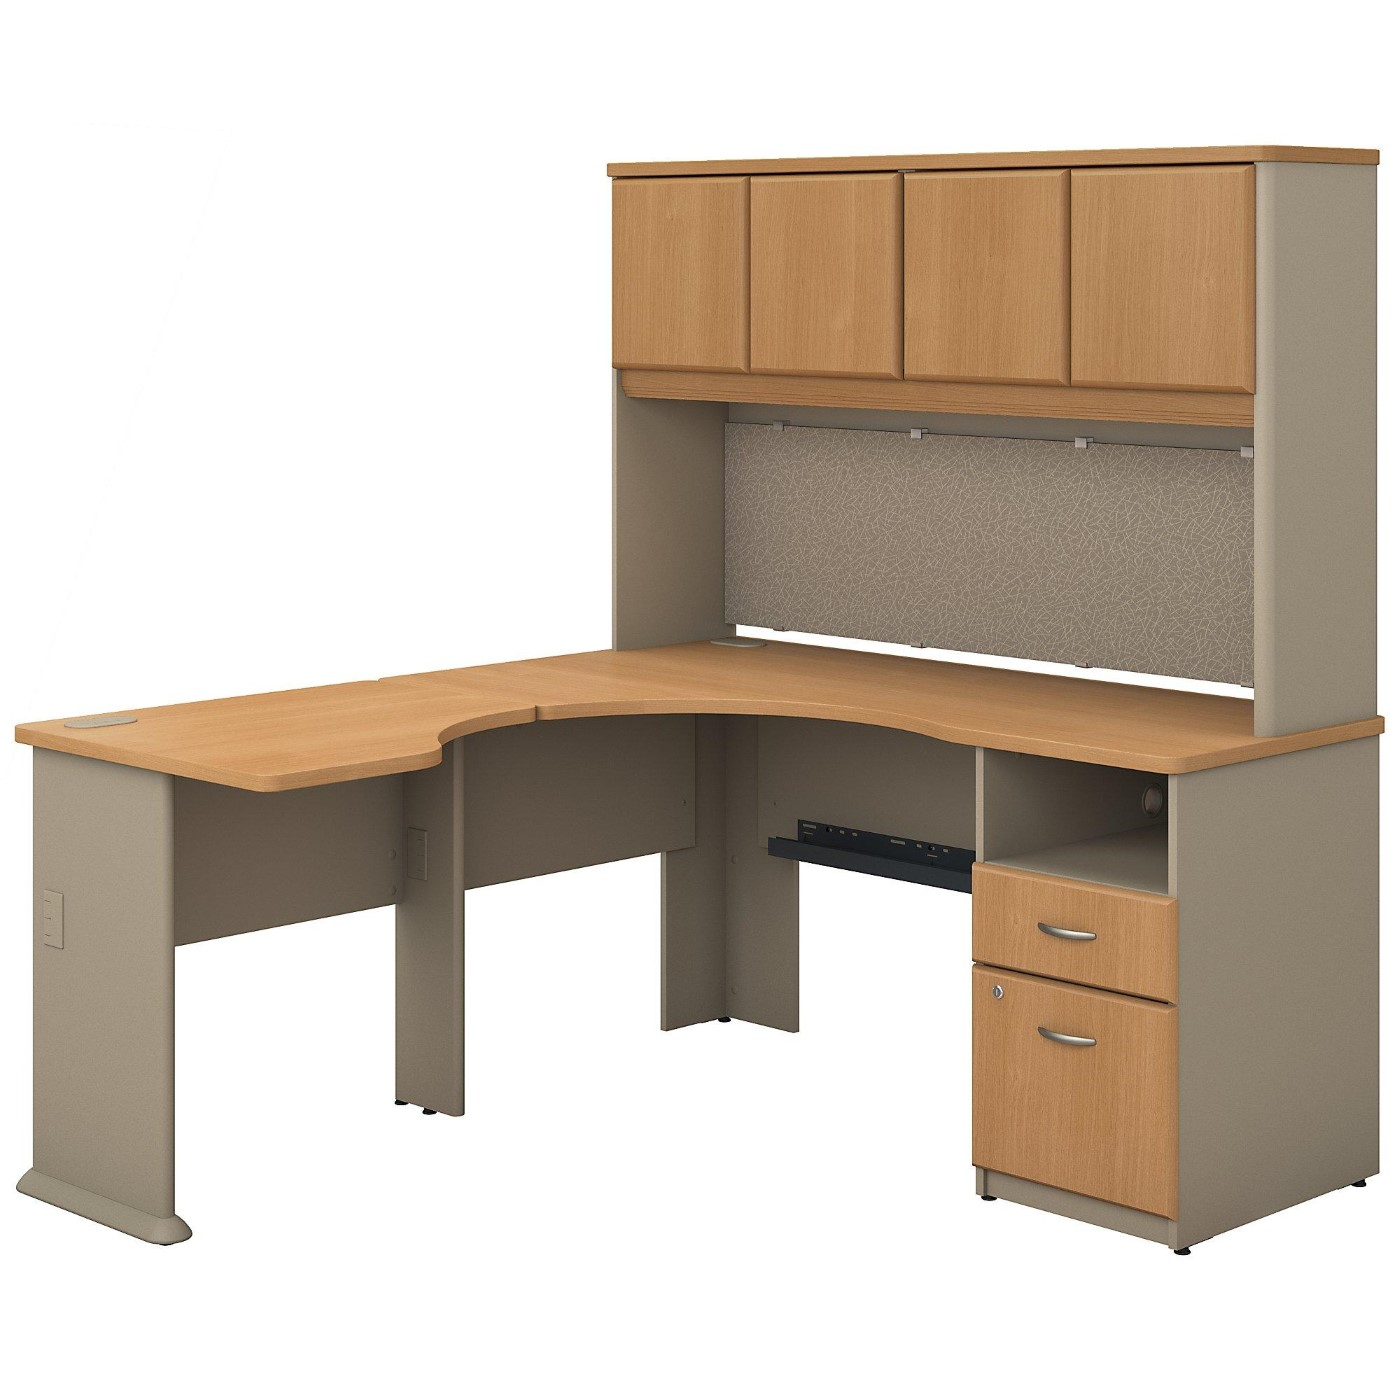 <font color=#c60><b>BUSH BUSINESS FURNITURE SERIES A 60W X 65D L SHAPED DESK WITH HUTCH AND 2 DRAWER PEDESTAL #EH-SRA062LO. FREE SHIPPING</font></b></font></b>